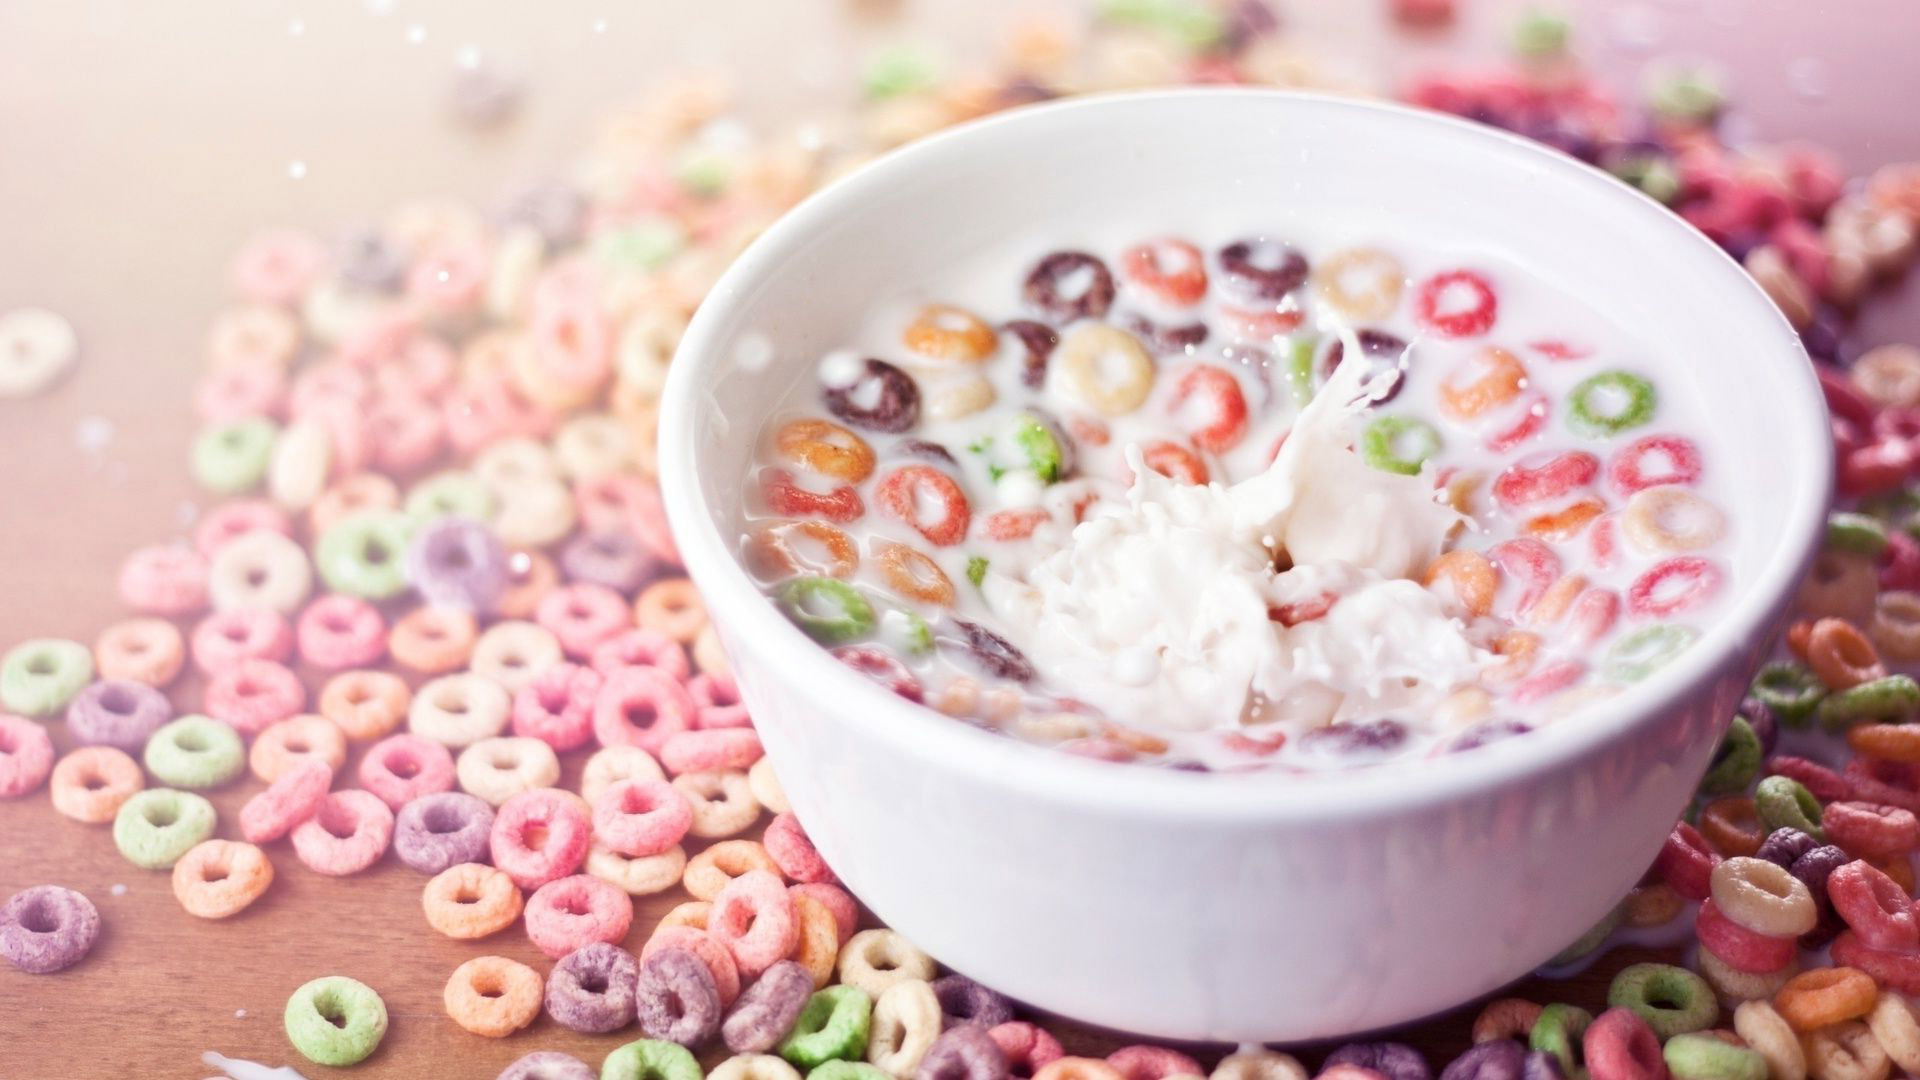 Awesome Cereal Bowl Wallpaper 38909 1920x1080 px ~ fond ecran